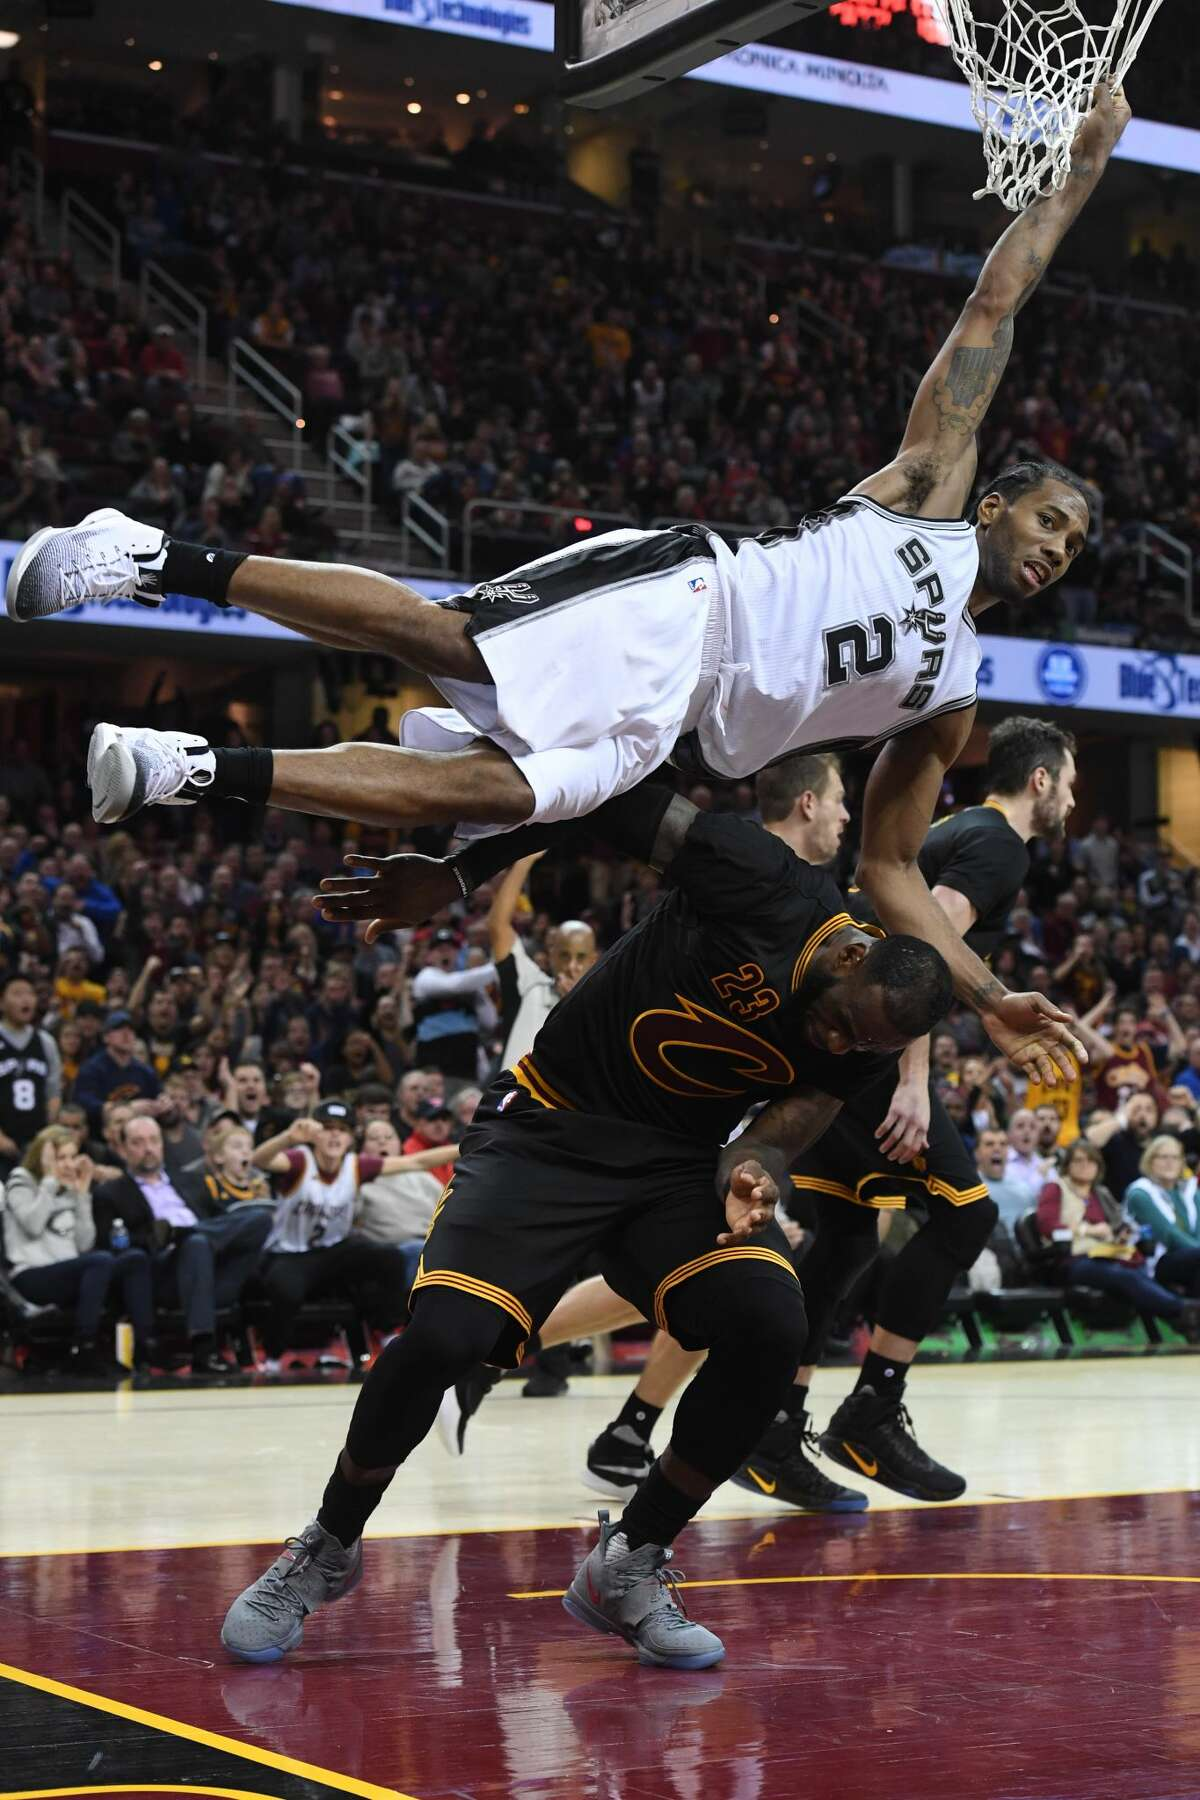 CLEVELAND, OH - JANUARY 21: Kawhi Leonard #2 of the San Antonio Spurs hangs on the net to avoid landing on LeBron James #23 of the Cleveland Cavaliers during overtime at Quicken Loans Arena on January 21, 2017 in Cleveland, Ohio. The Spurs defeated the Cavaliers 118-115. NOTE TO USER: User expressly acknowledges and agrees that, by downloading and/or using this photograph, user is consenting to the terms and conditions of the Getty Images License Agreement. Mandatory copyright notice. (Photo by Jason Miller/Getty Images)